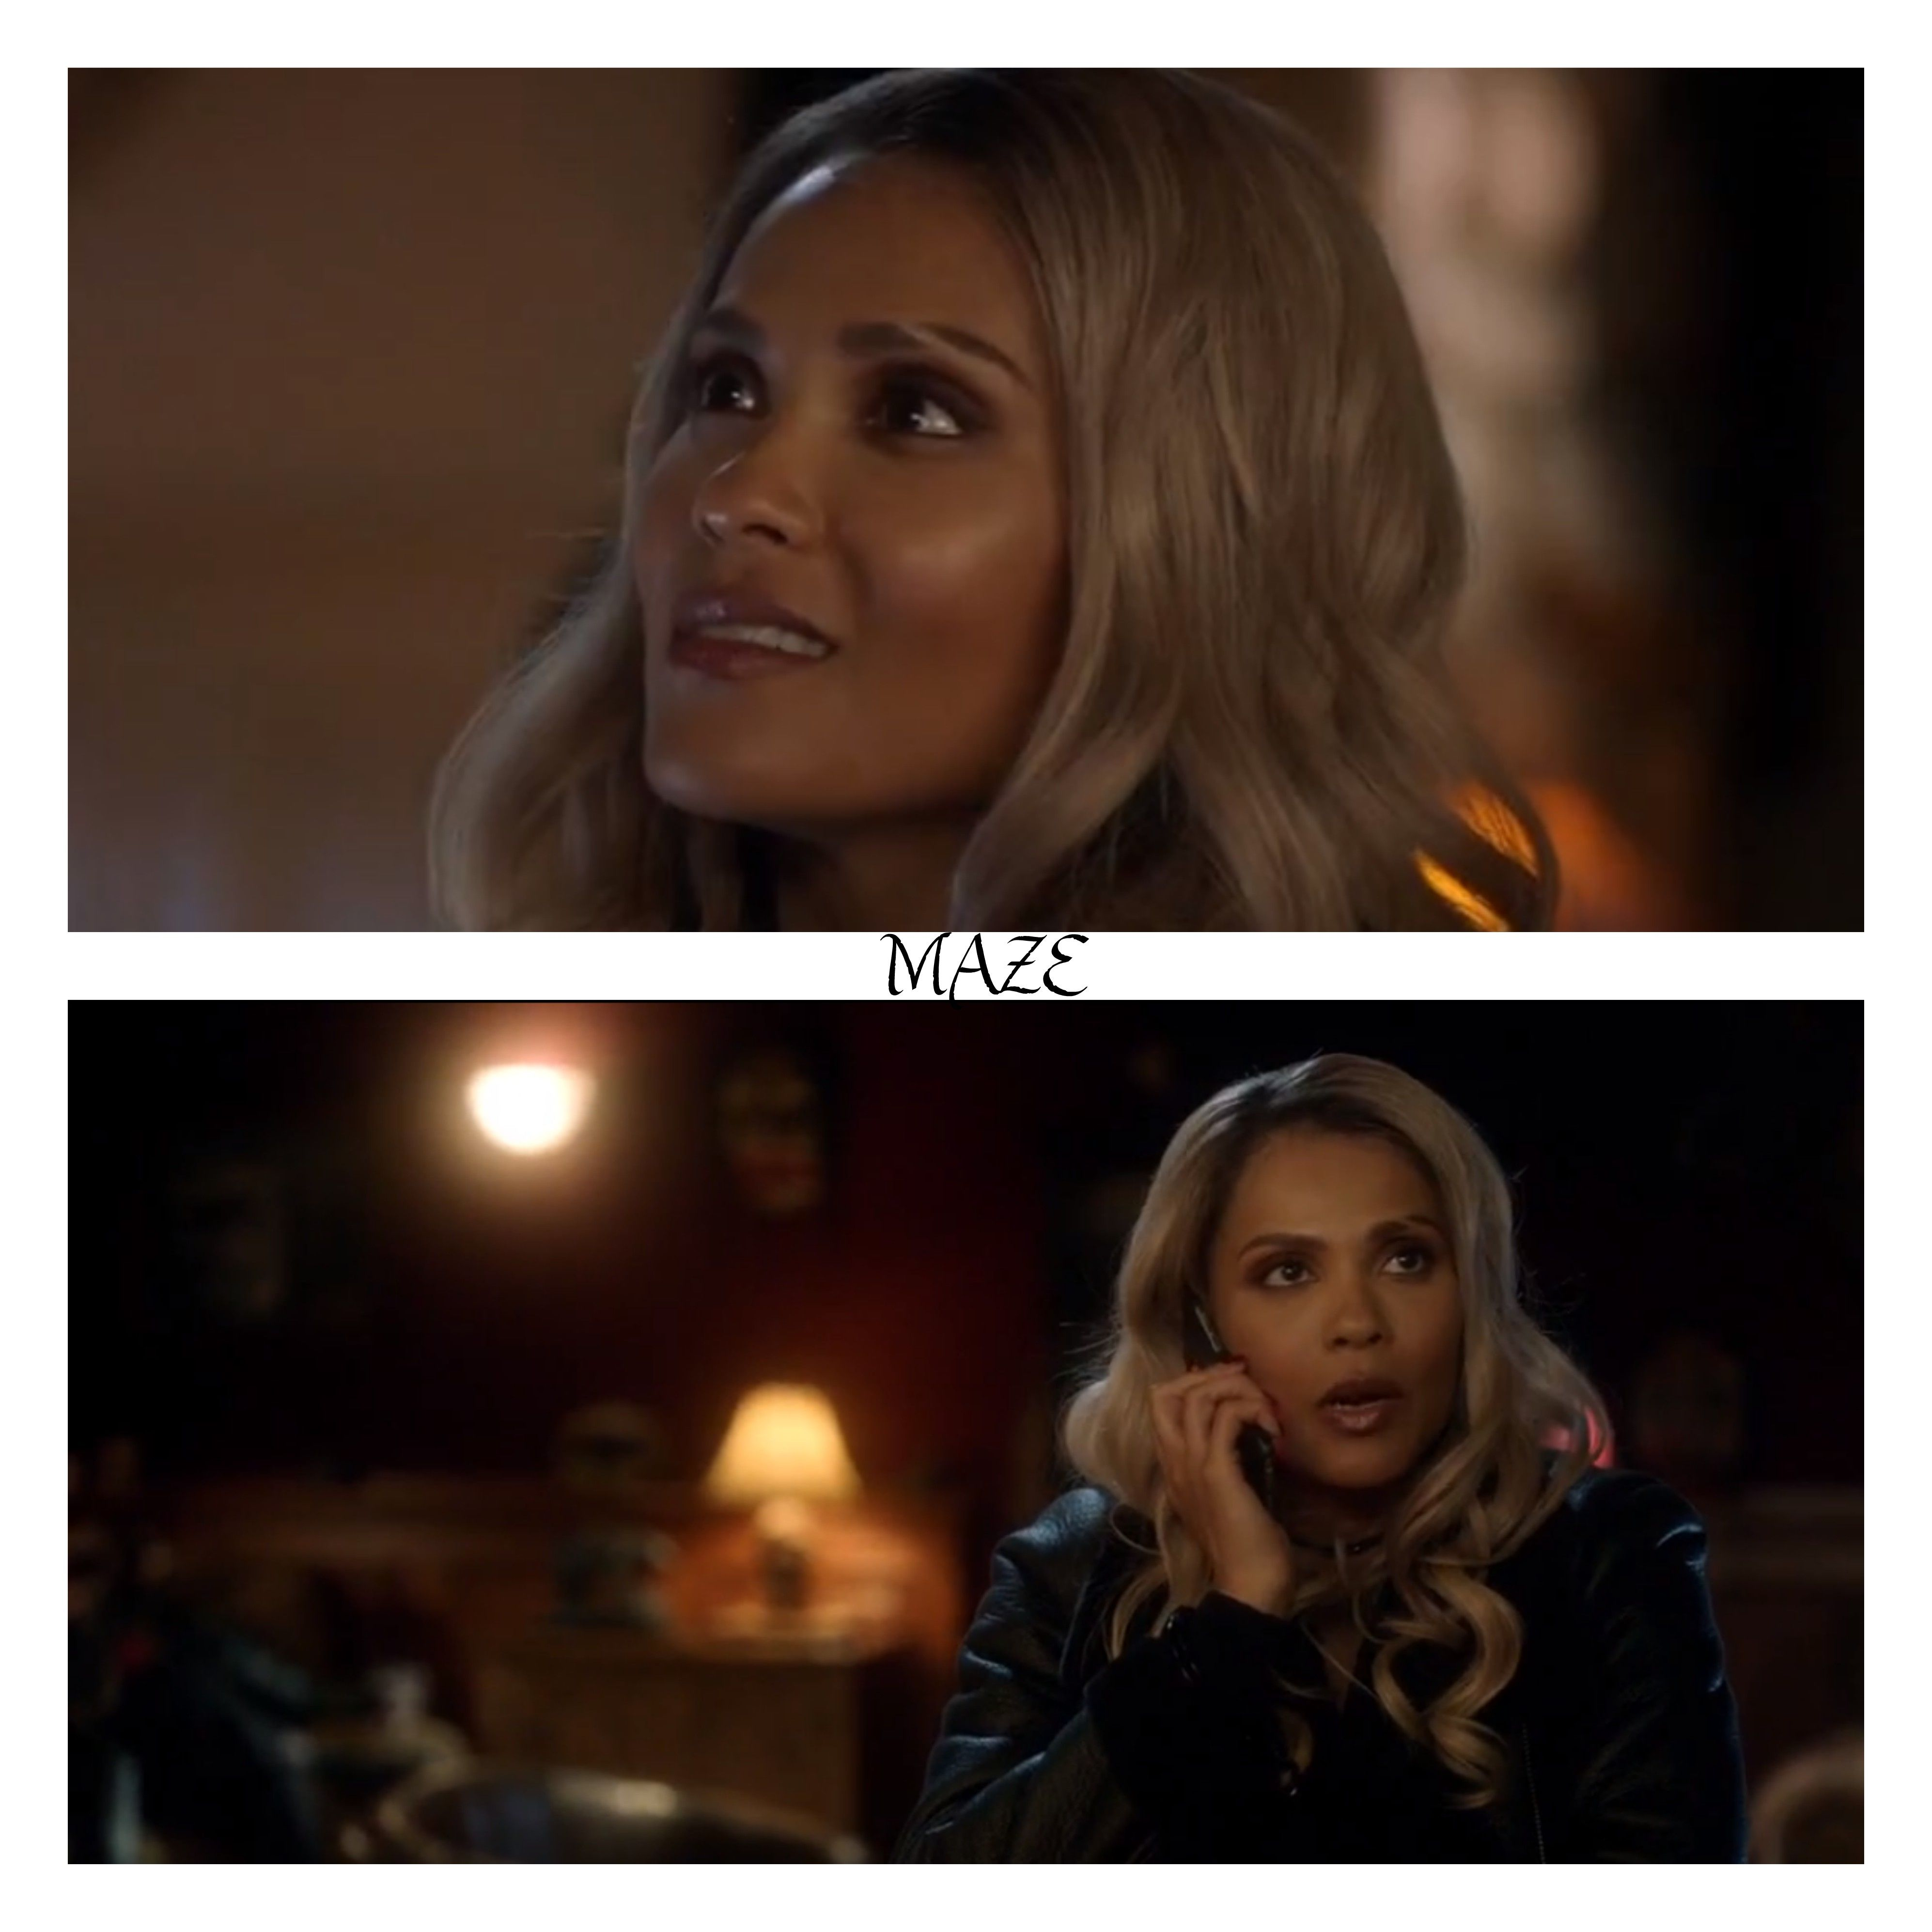 MAZIKEEN. Lucifer Saison 3. Demon | TV SHOWS | Pinterest | TVs